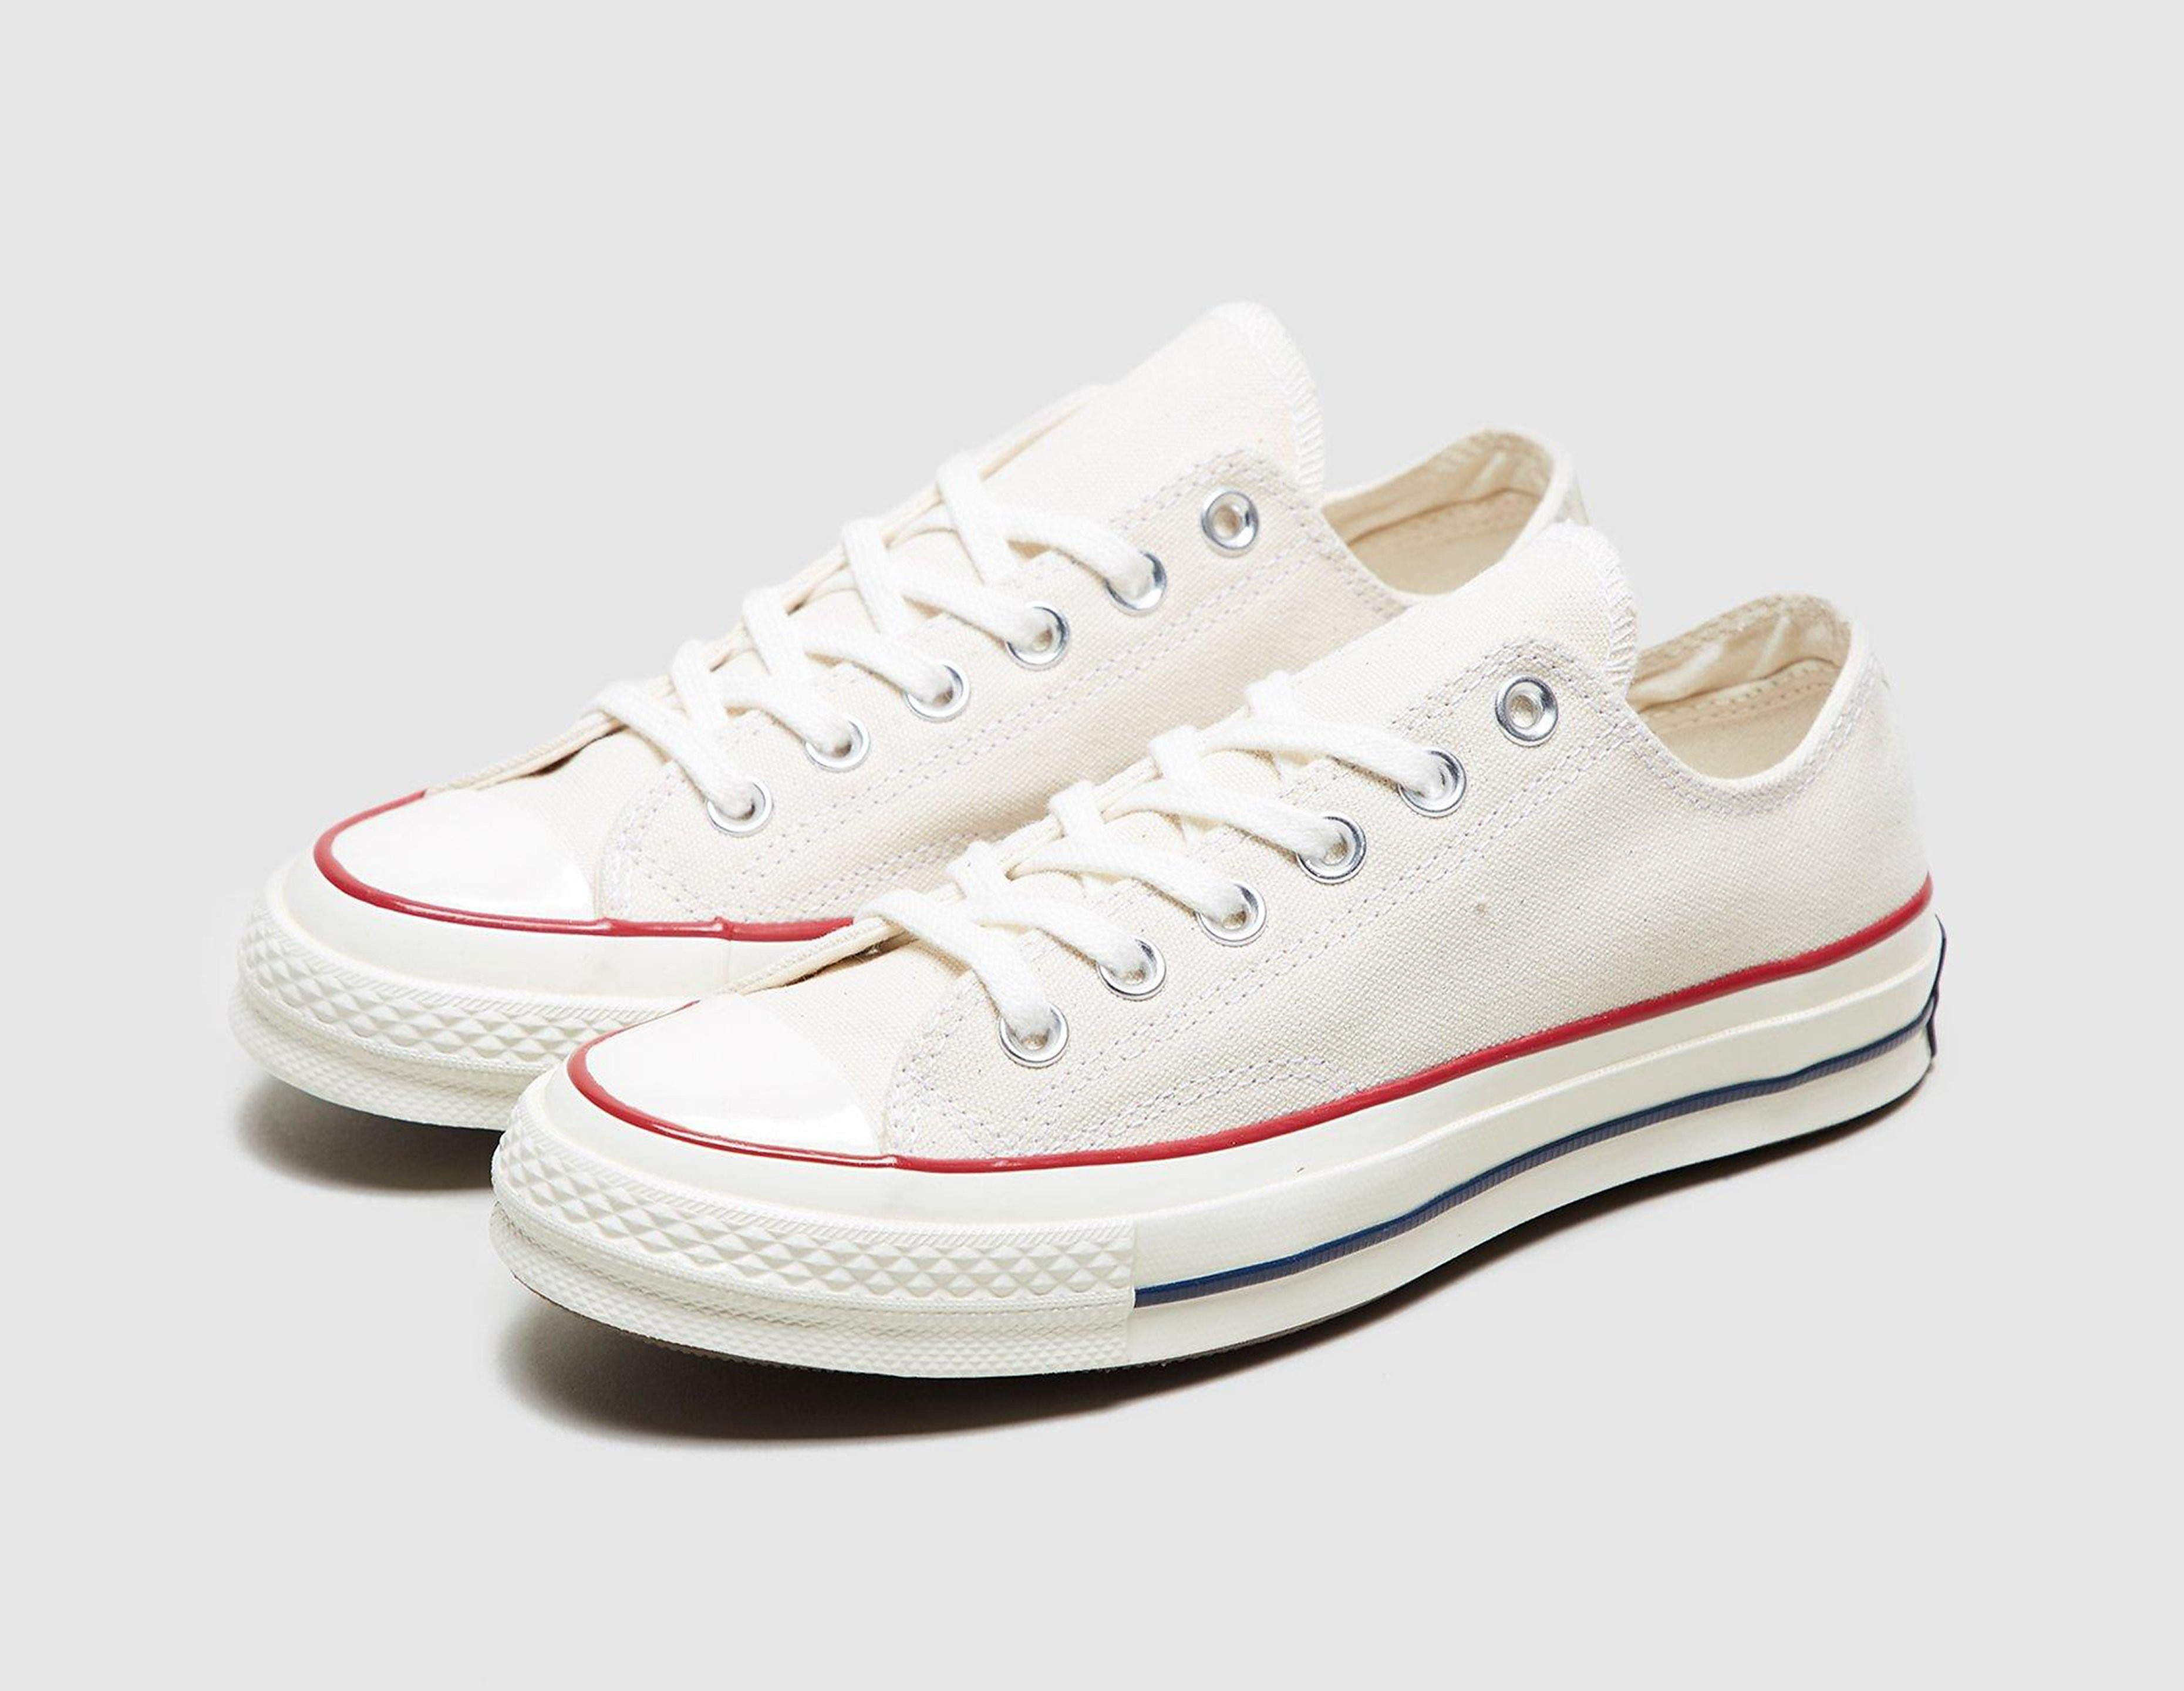 Converse All Star 70 Women's